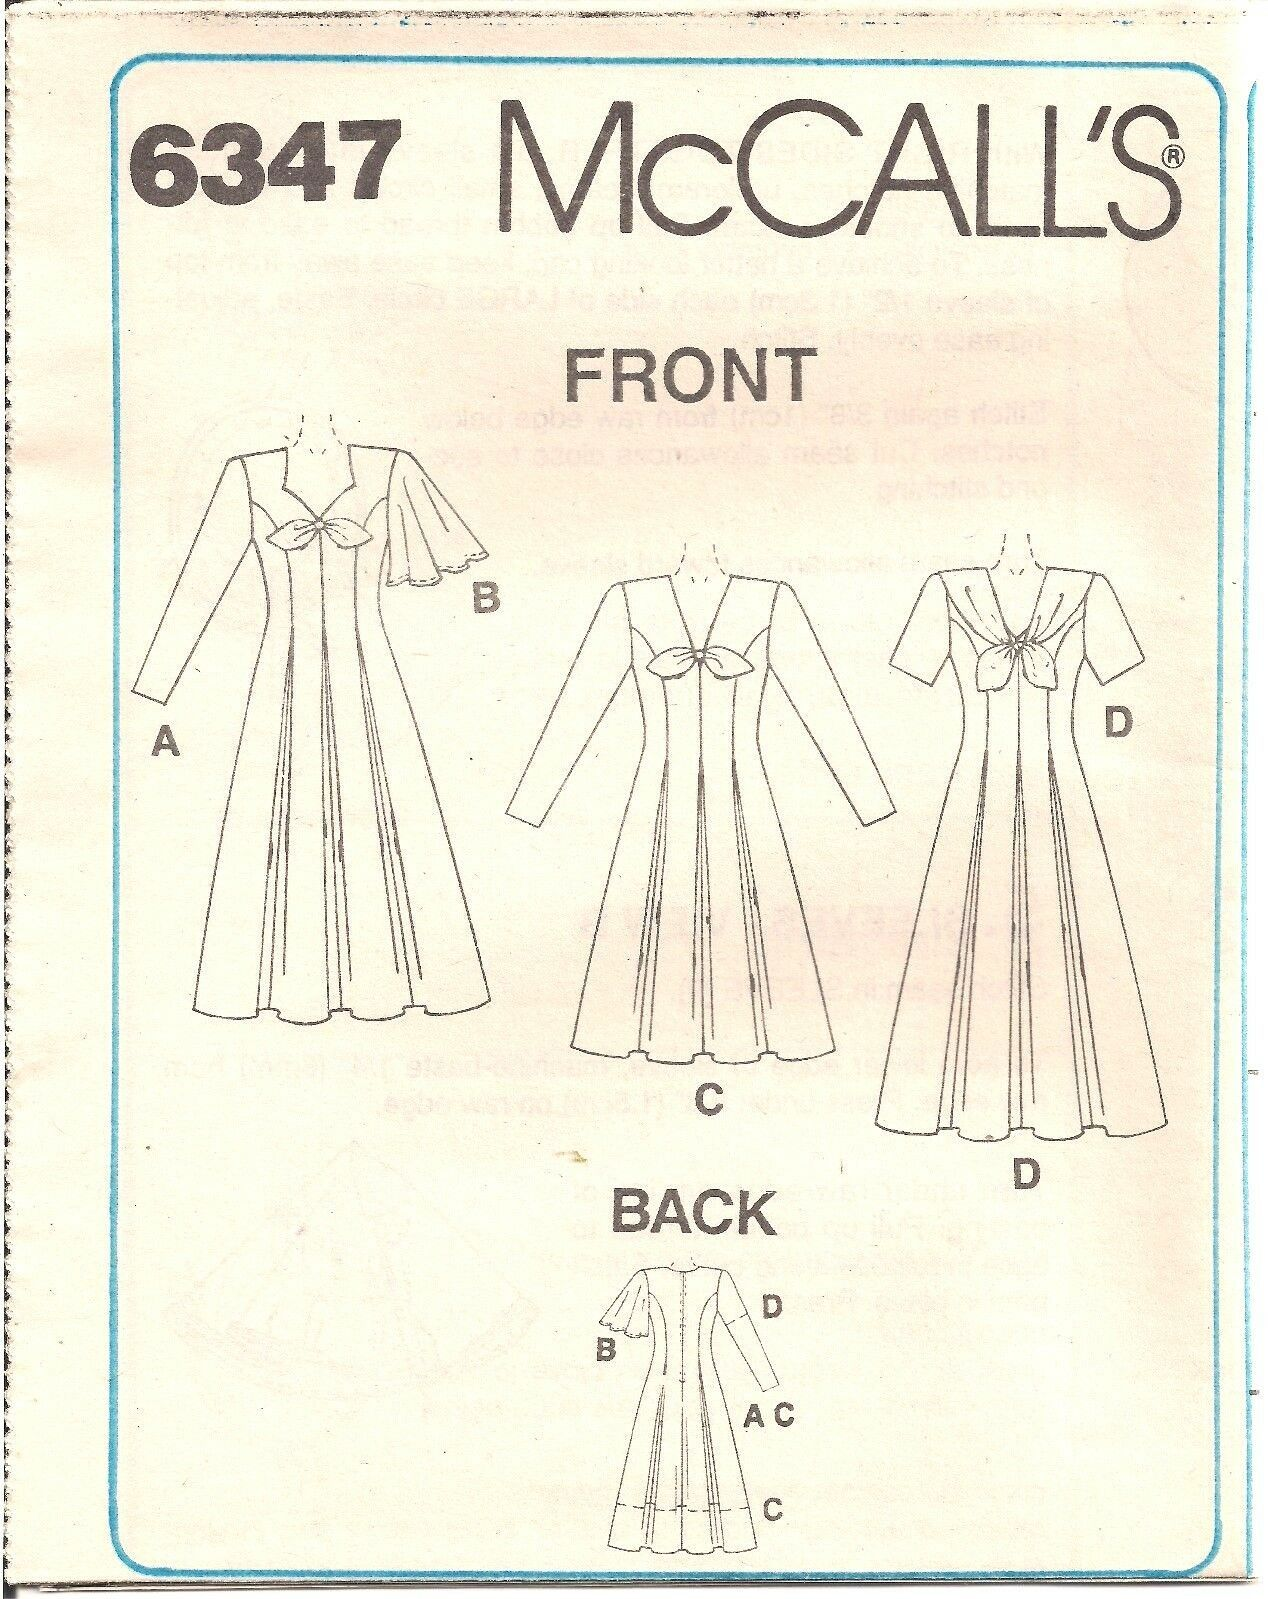 McCalls Dress Pattern 6347 Uncut Size C 101214 Instructions Included